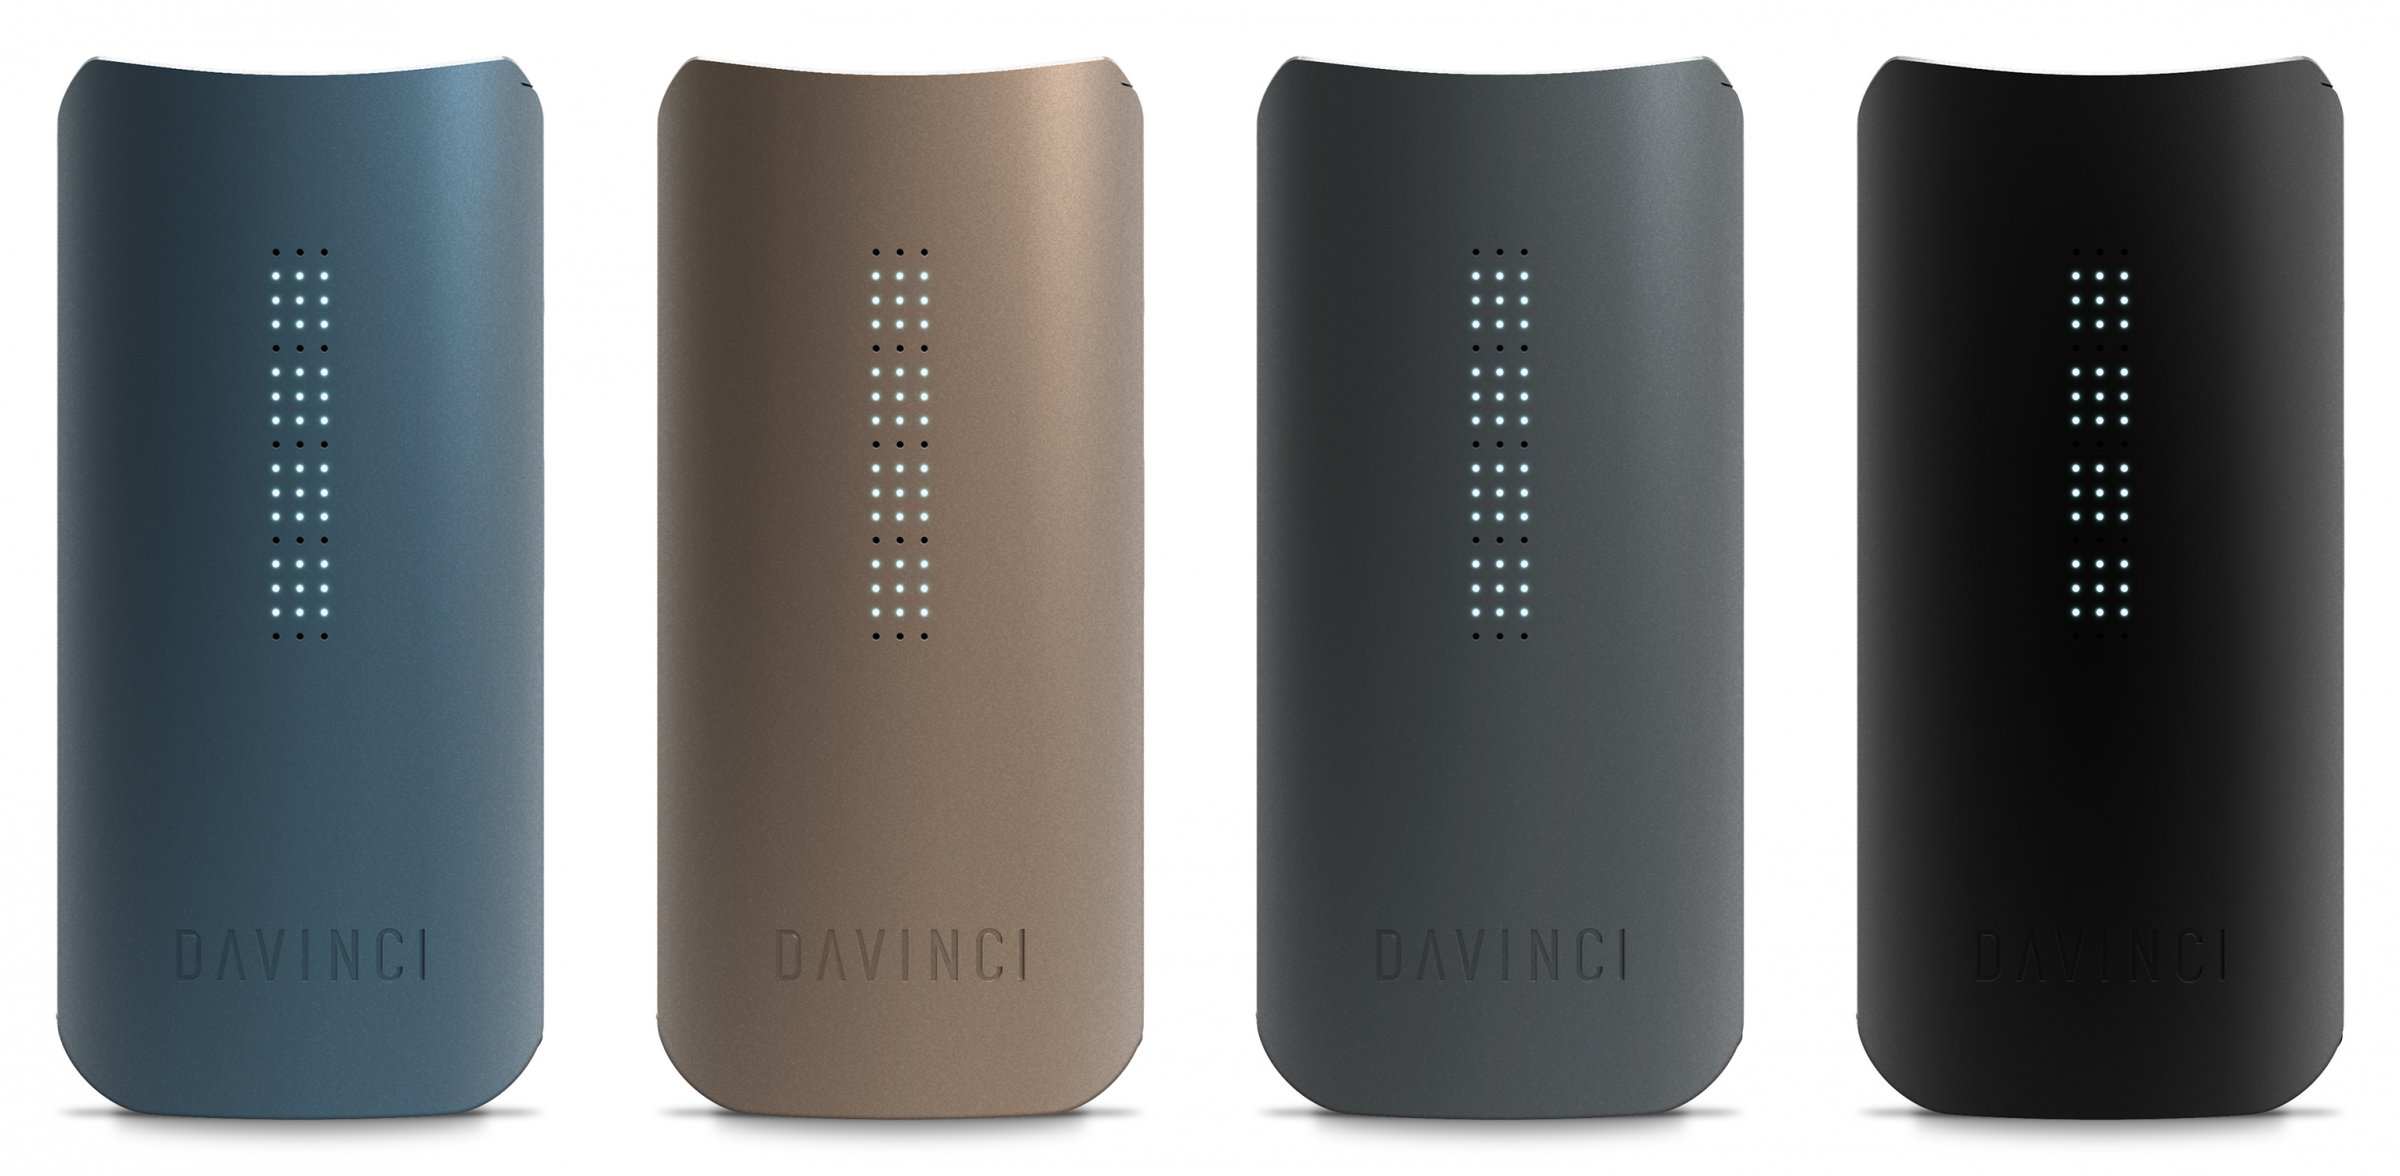 DaVinci IQ Vaporizers (Various Colors Shown)